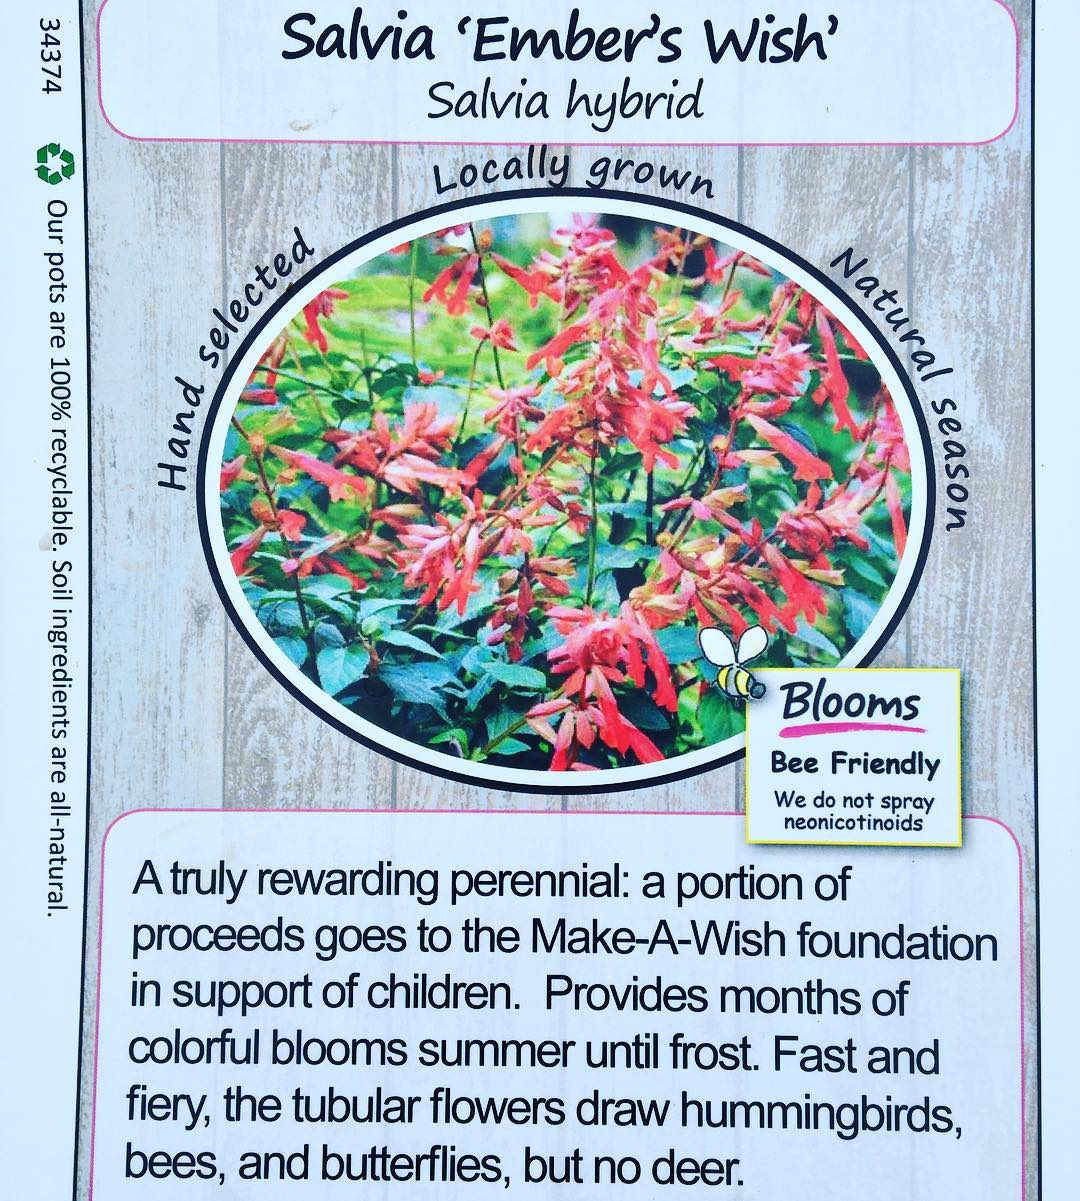 Choose non-GMO Seeds - Next time you're buying plants, choose growers who are committed to producing responsibly made plants. Today I bought this stellar salvia from Blooms: they don't grow GMO varieties, their pots are 100% recyclable, and they don't spray neonicotinoides which means they don't use an insecticide that harms bees. And as if that wasn't good enough, a portion of the proceeds from my salvia purchase goes to Make-A-Wish foundation in support of children. #bloomswholesalenursery #savethebees #shopsmart #plants #littlethings #marincounty #gardening #salvia #littleactsbigchange 🐝